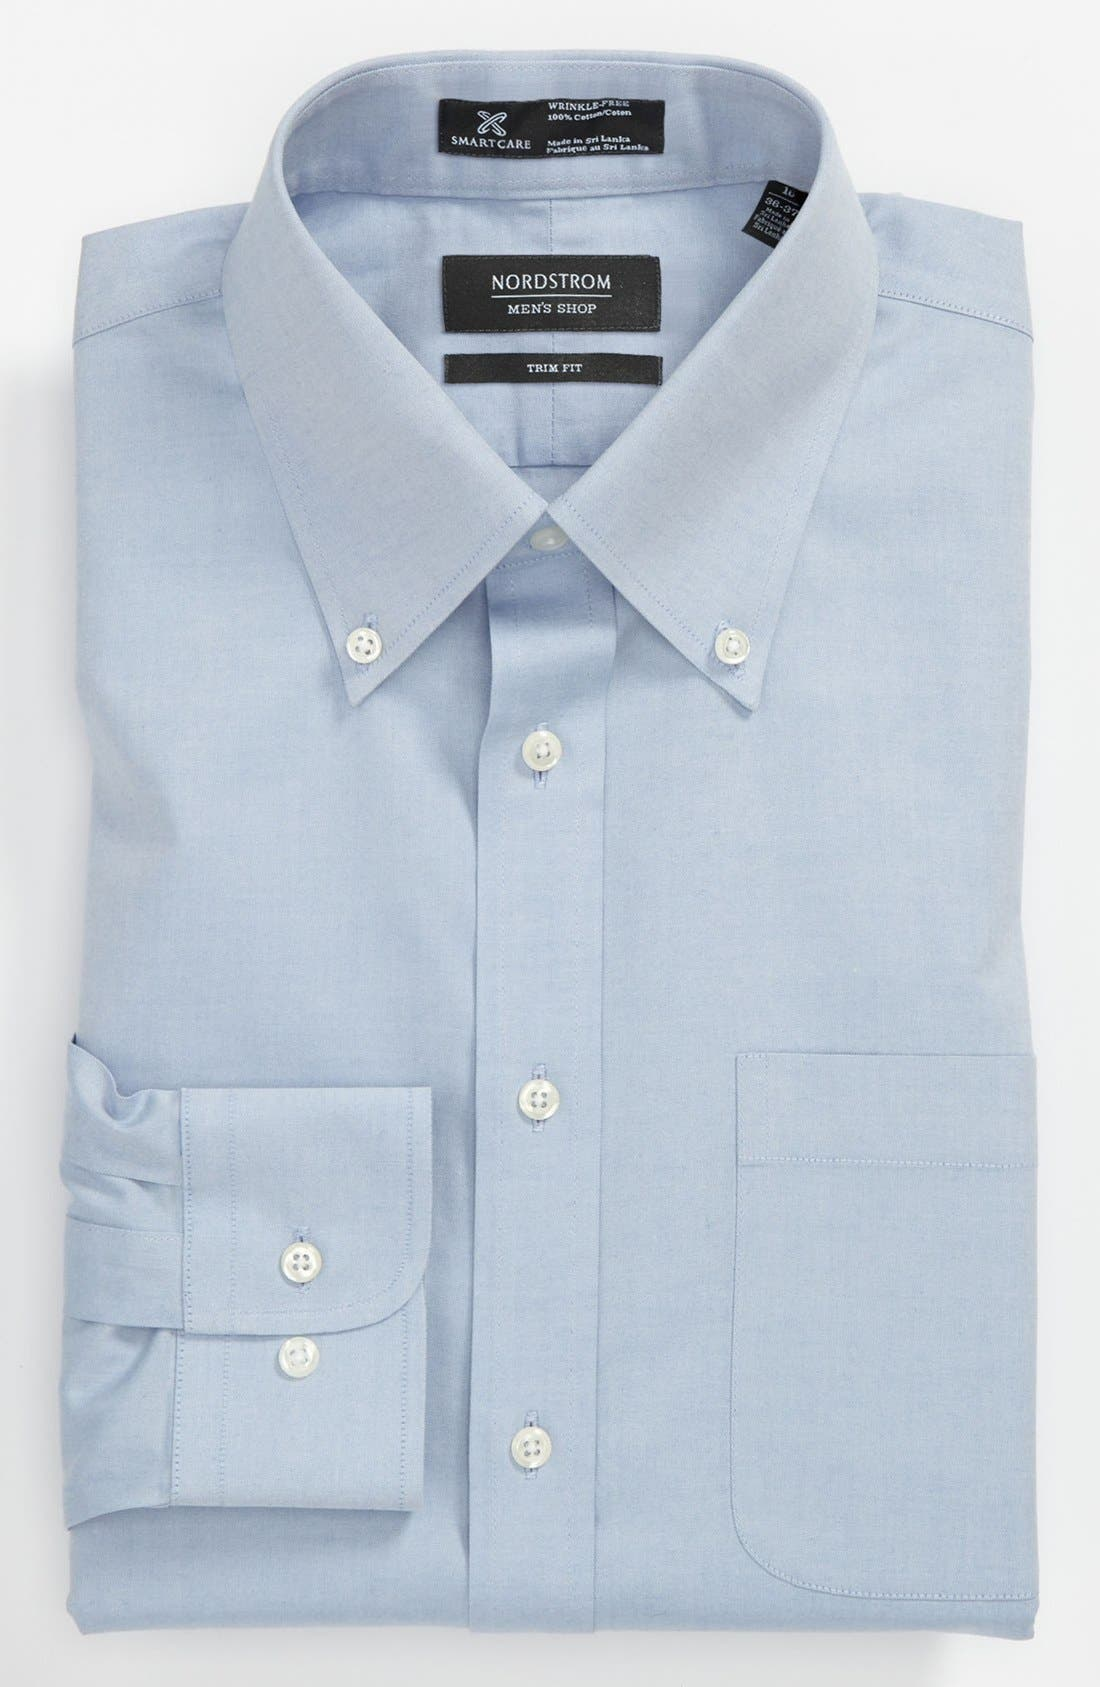 Nordstrom Men's Shop Smartcare™ Trim Fit Solid Dress Shirt